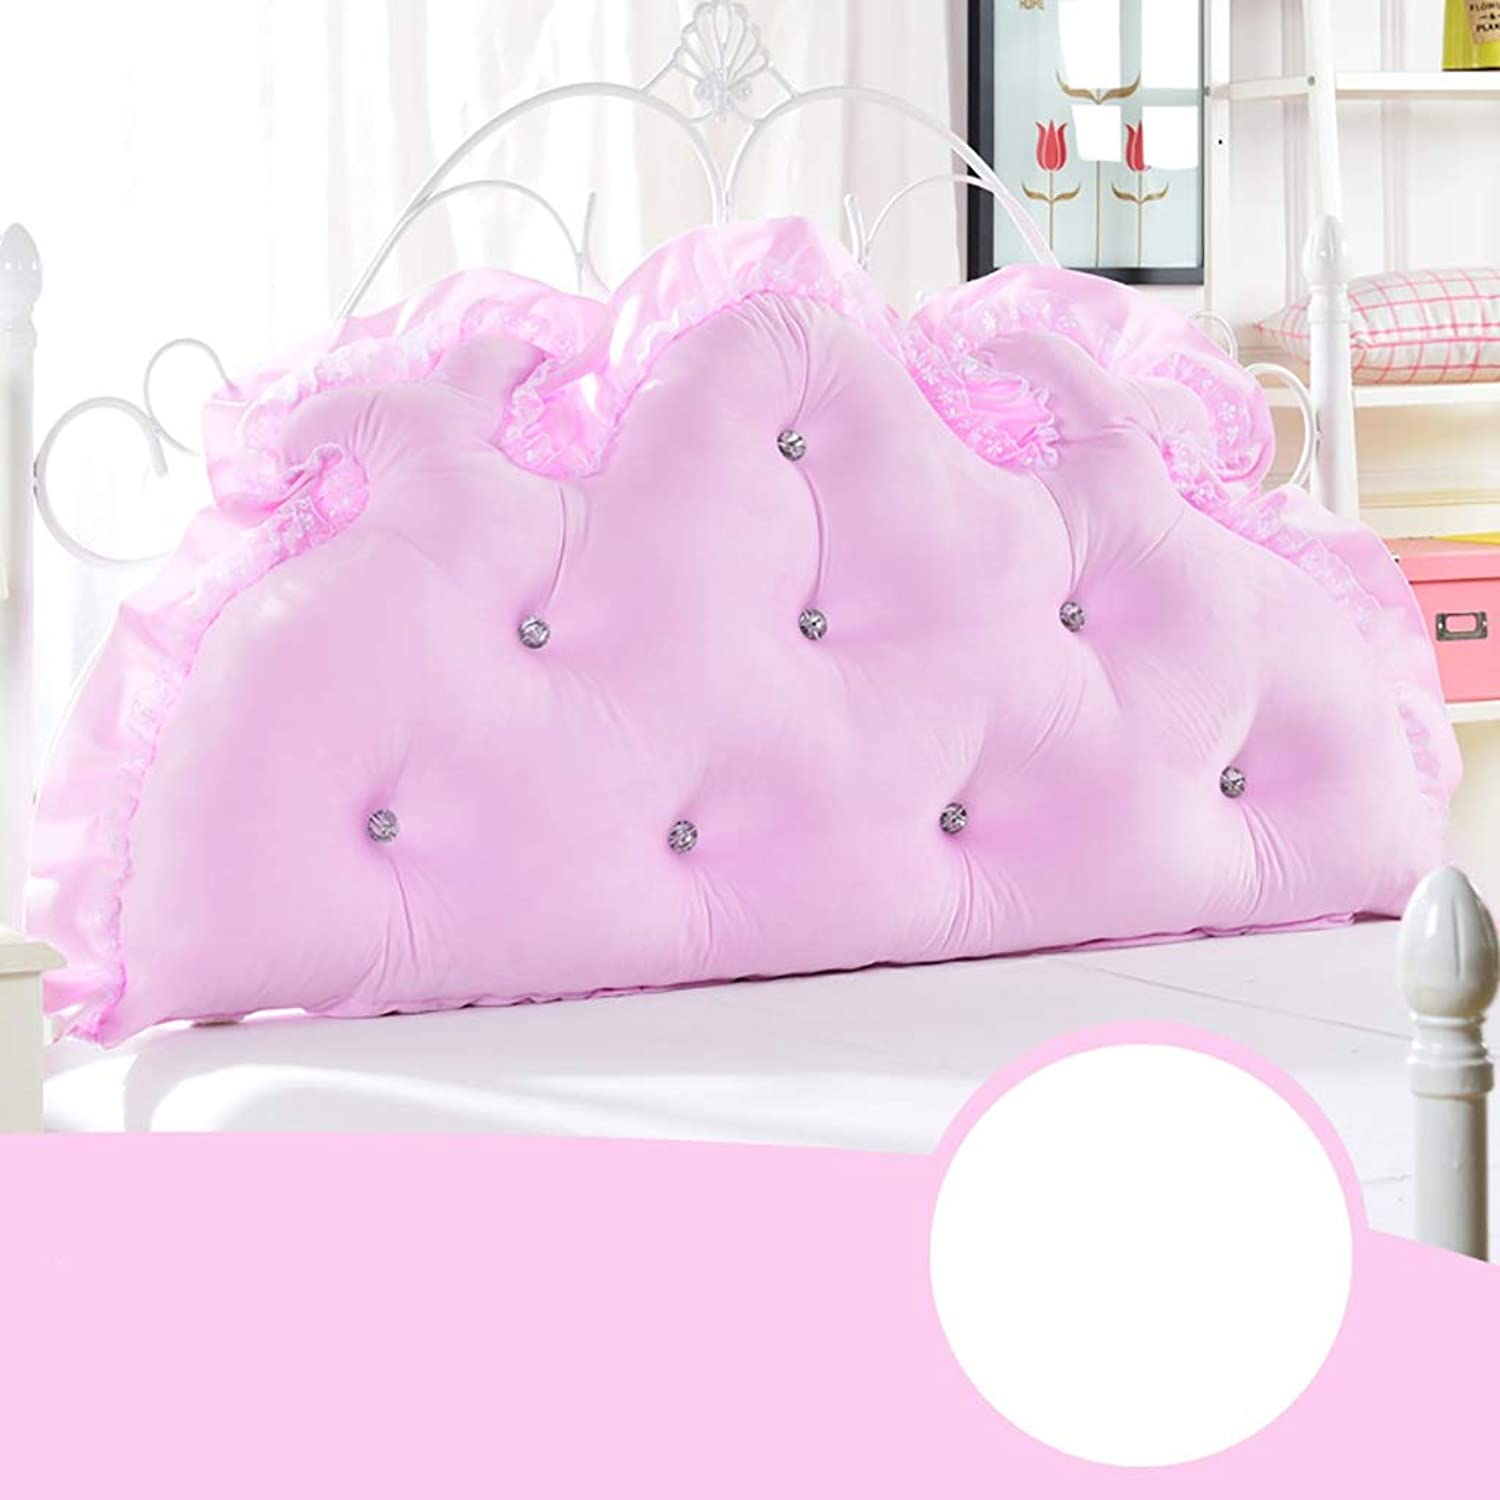 Headboard Bed Backrest Cushion Bed Cushion Bedside Pillow Soft Large Pillow Lumbar Support Detachable and Washable 6 Solid colors 4